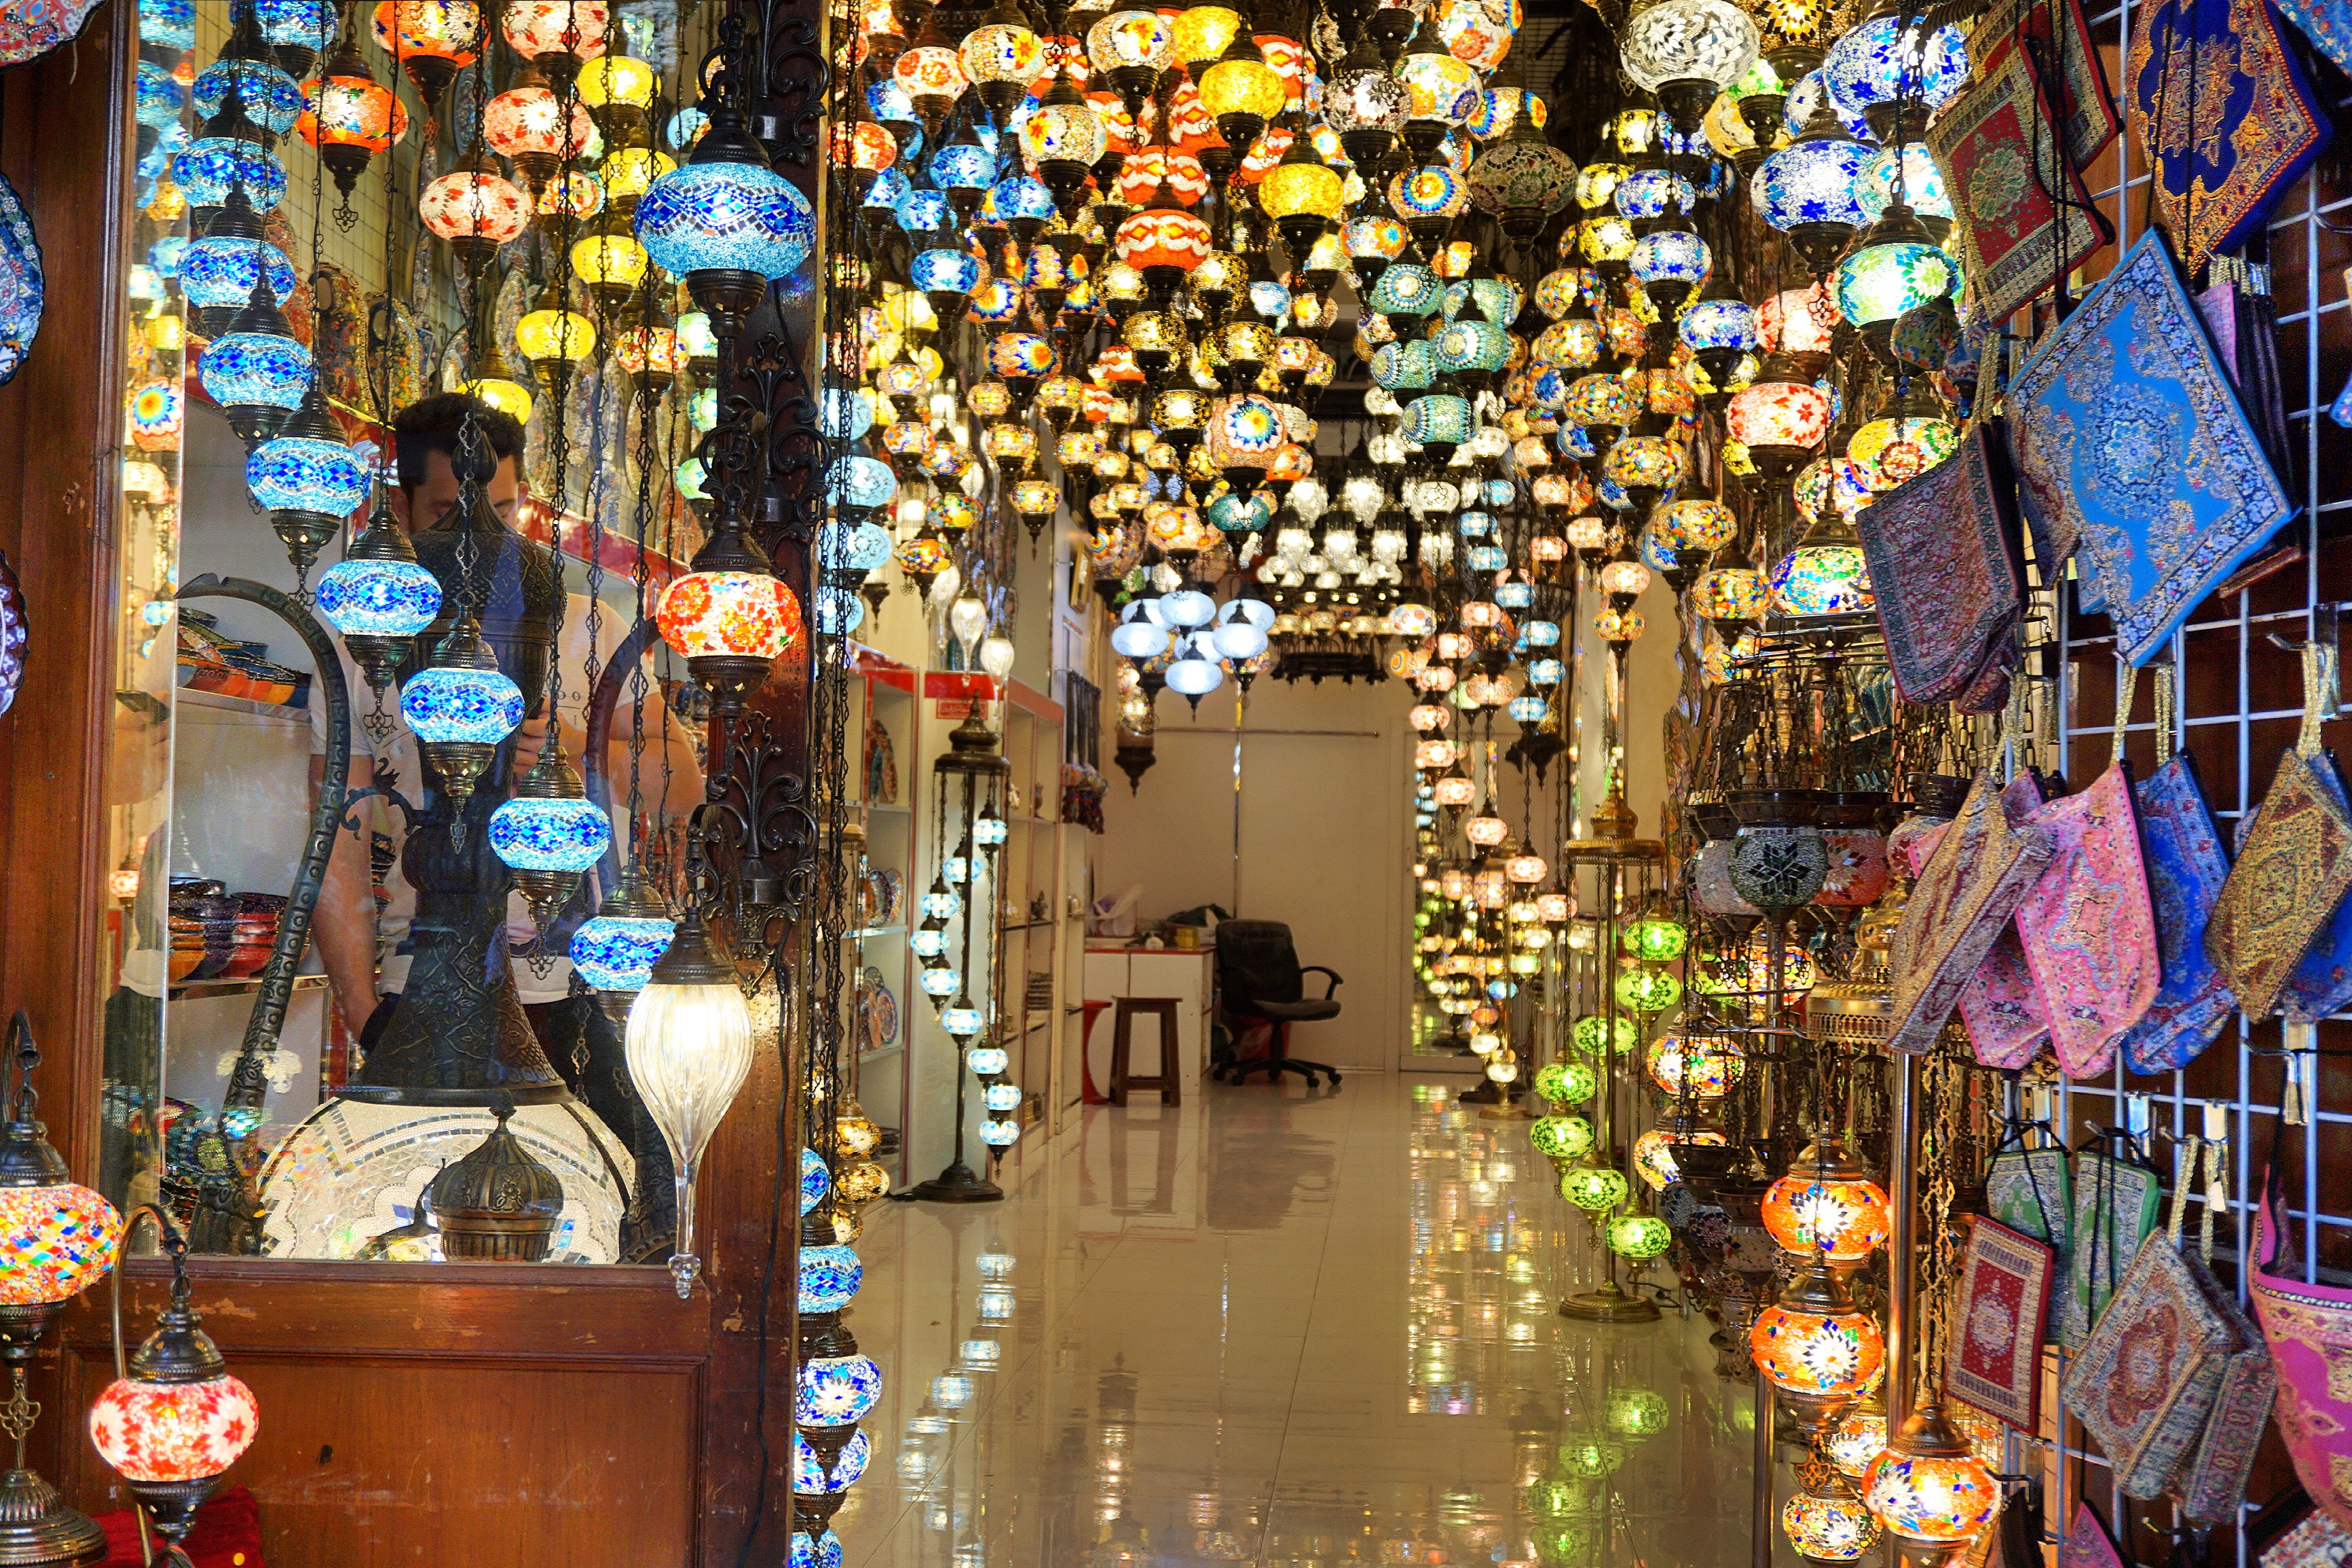 colorful-lights-lighting-fixtures-souks-dubai